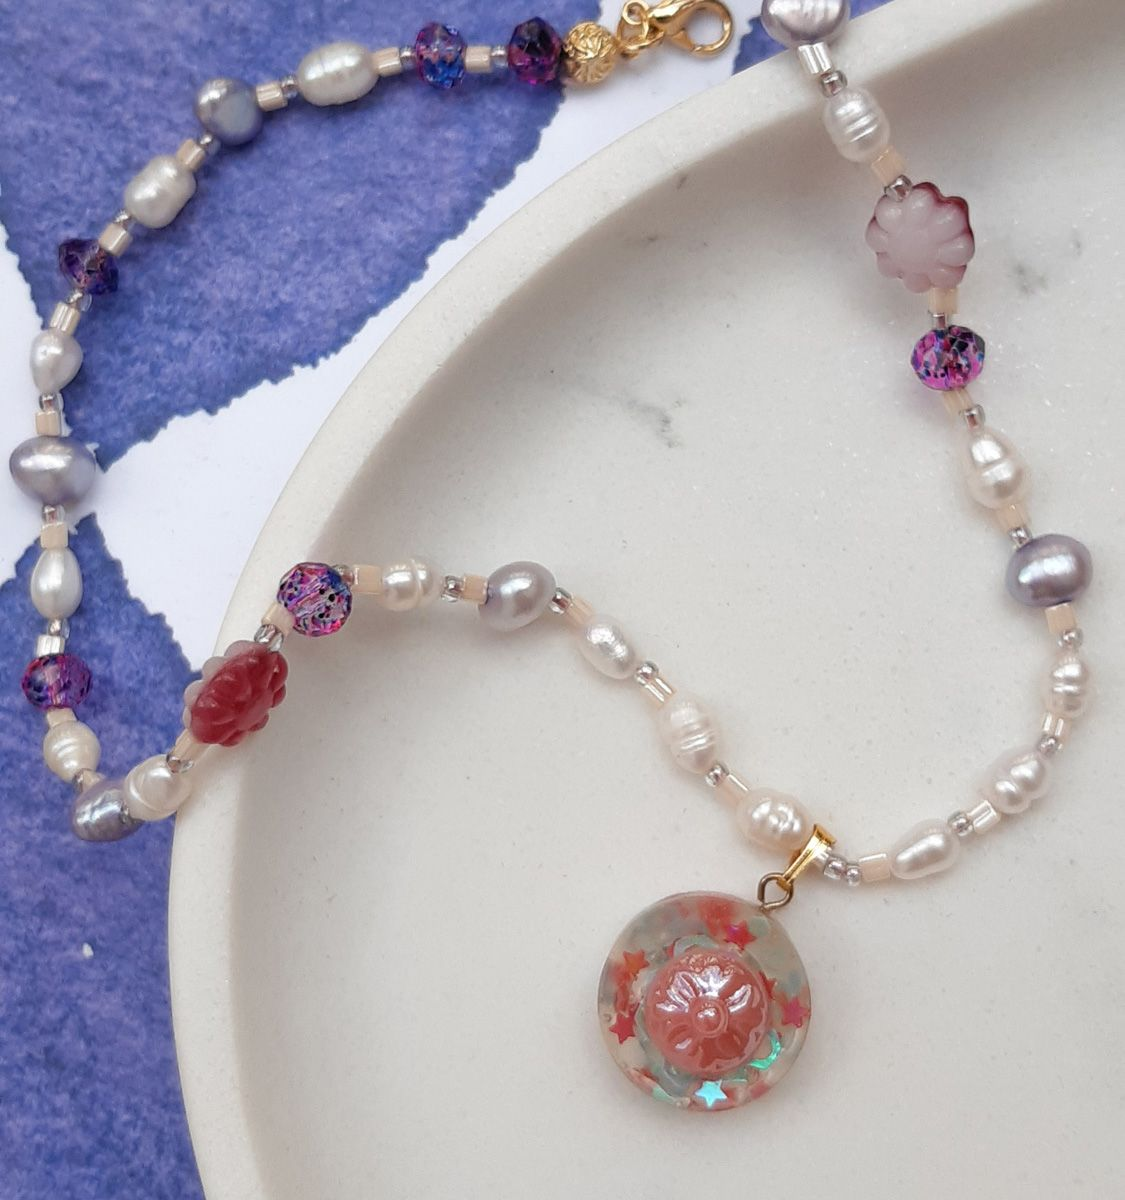 Medallion pearly necklace